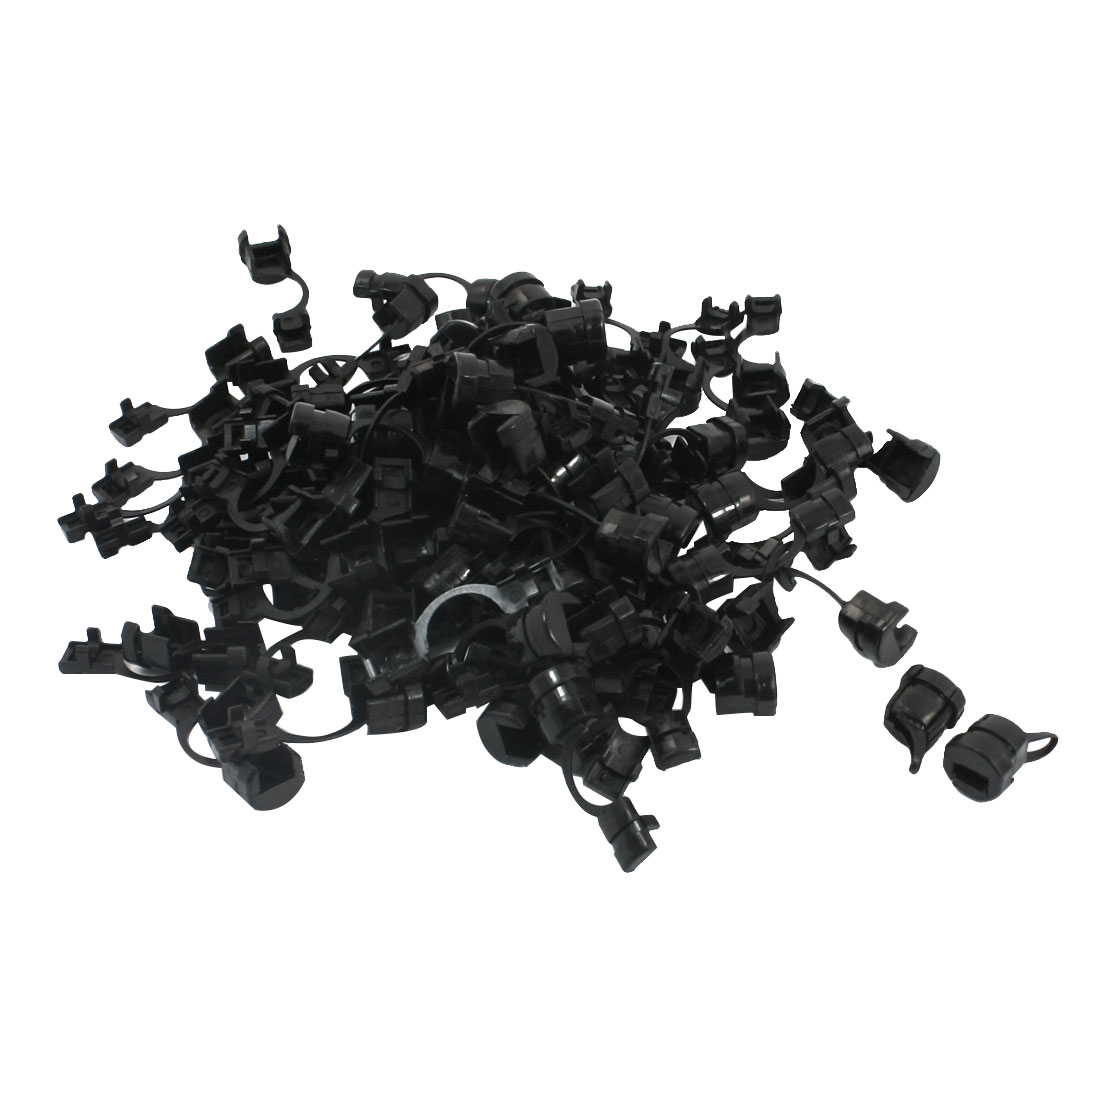 100 Pcs 5.5mm Width Nylon Wire Cord Clip Clamp Strain Relief Bushing